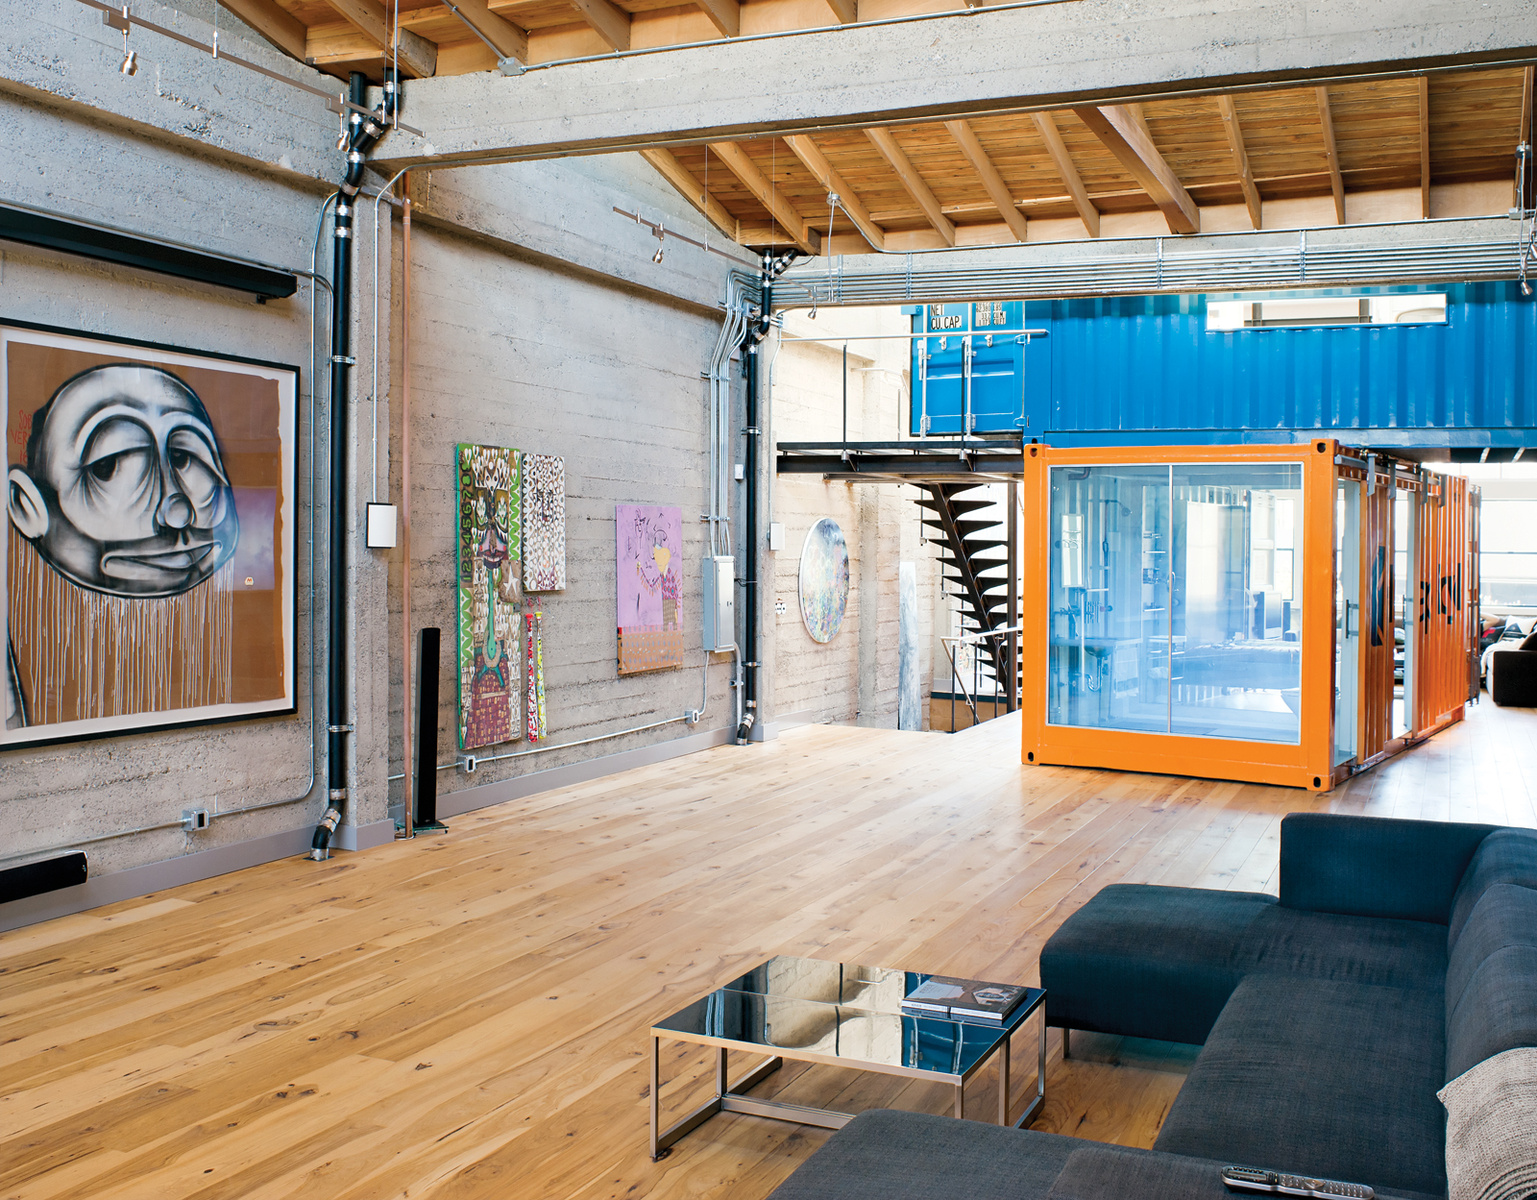 Shipping container homes shipping containers in loft apartment san francisco california - Storage containers as homes ...